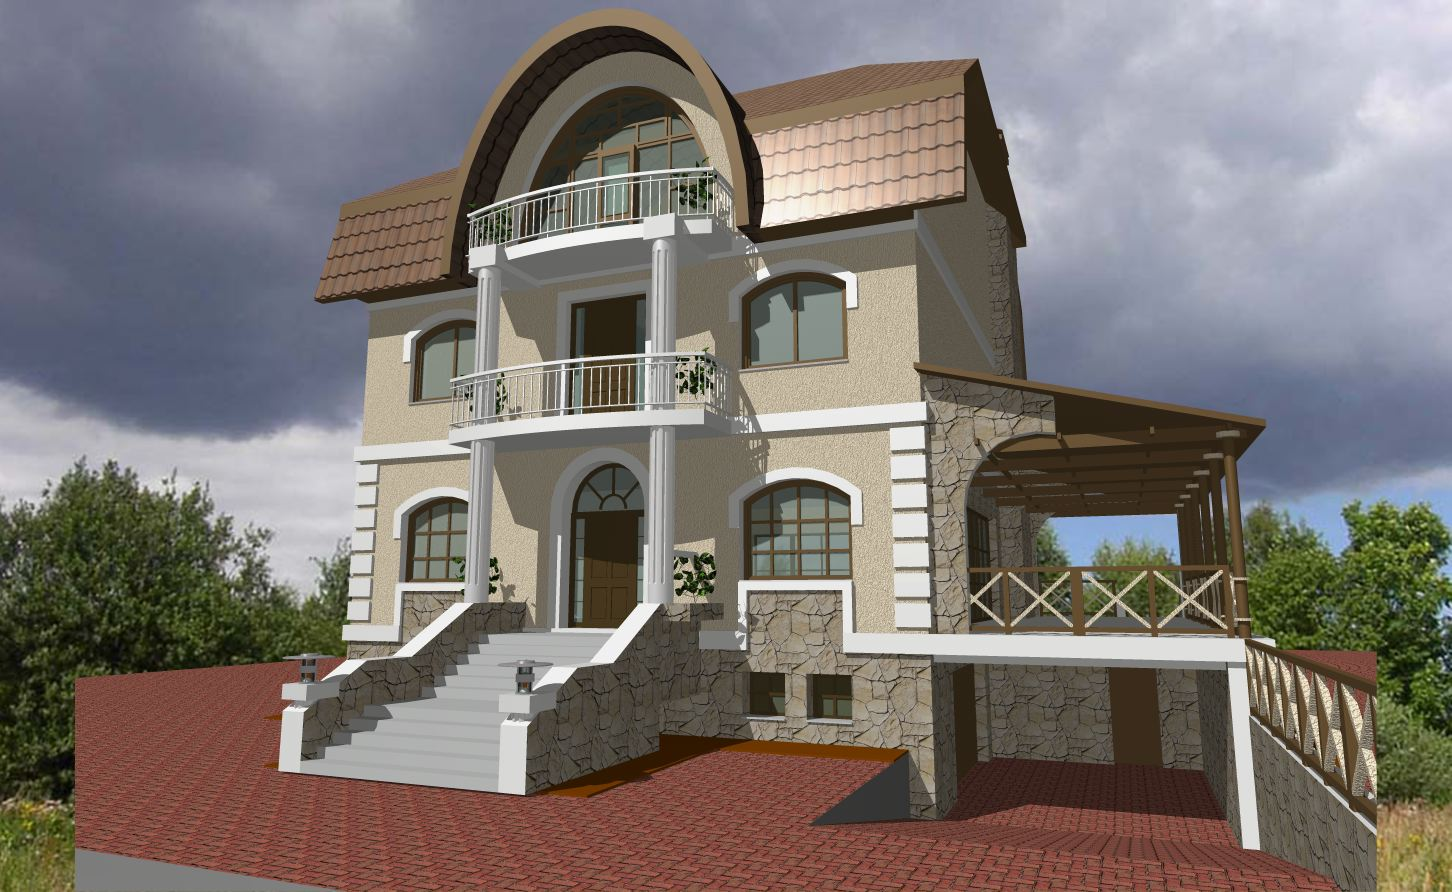 Foundation dezin decor exterior elevations view 39 s for Outer decoration of house